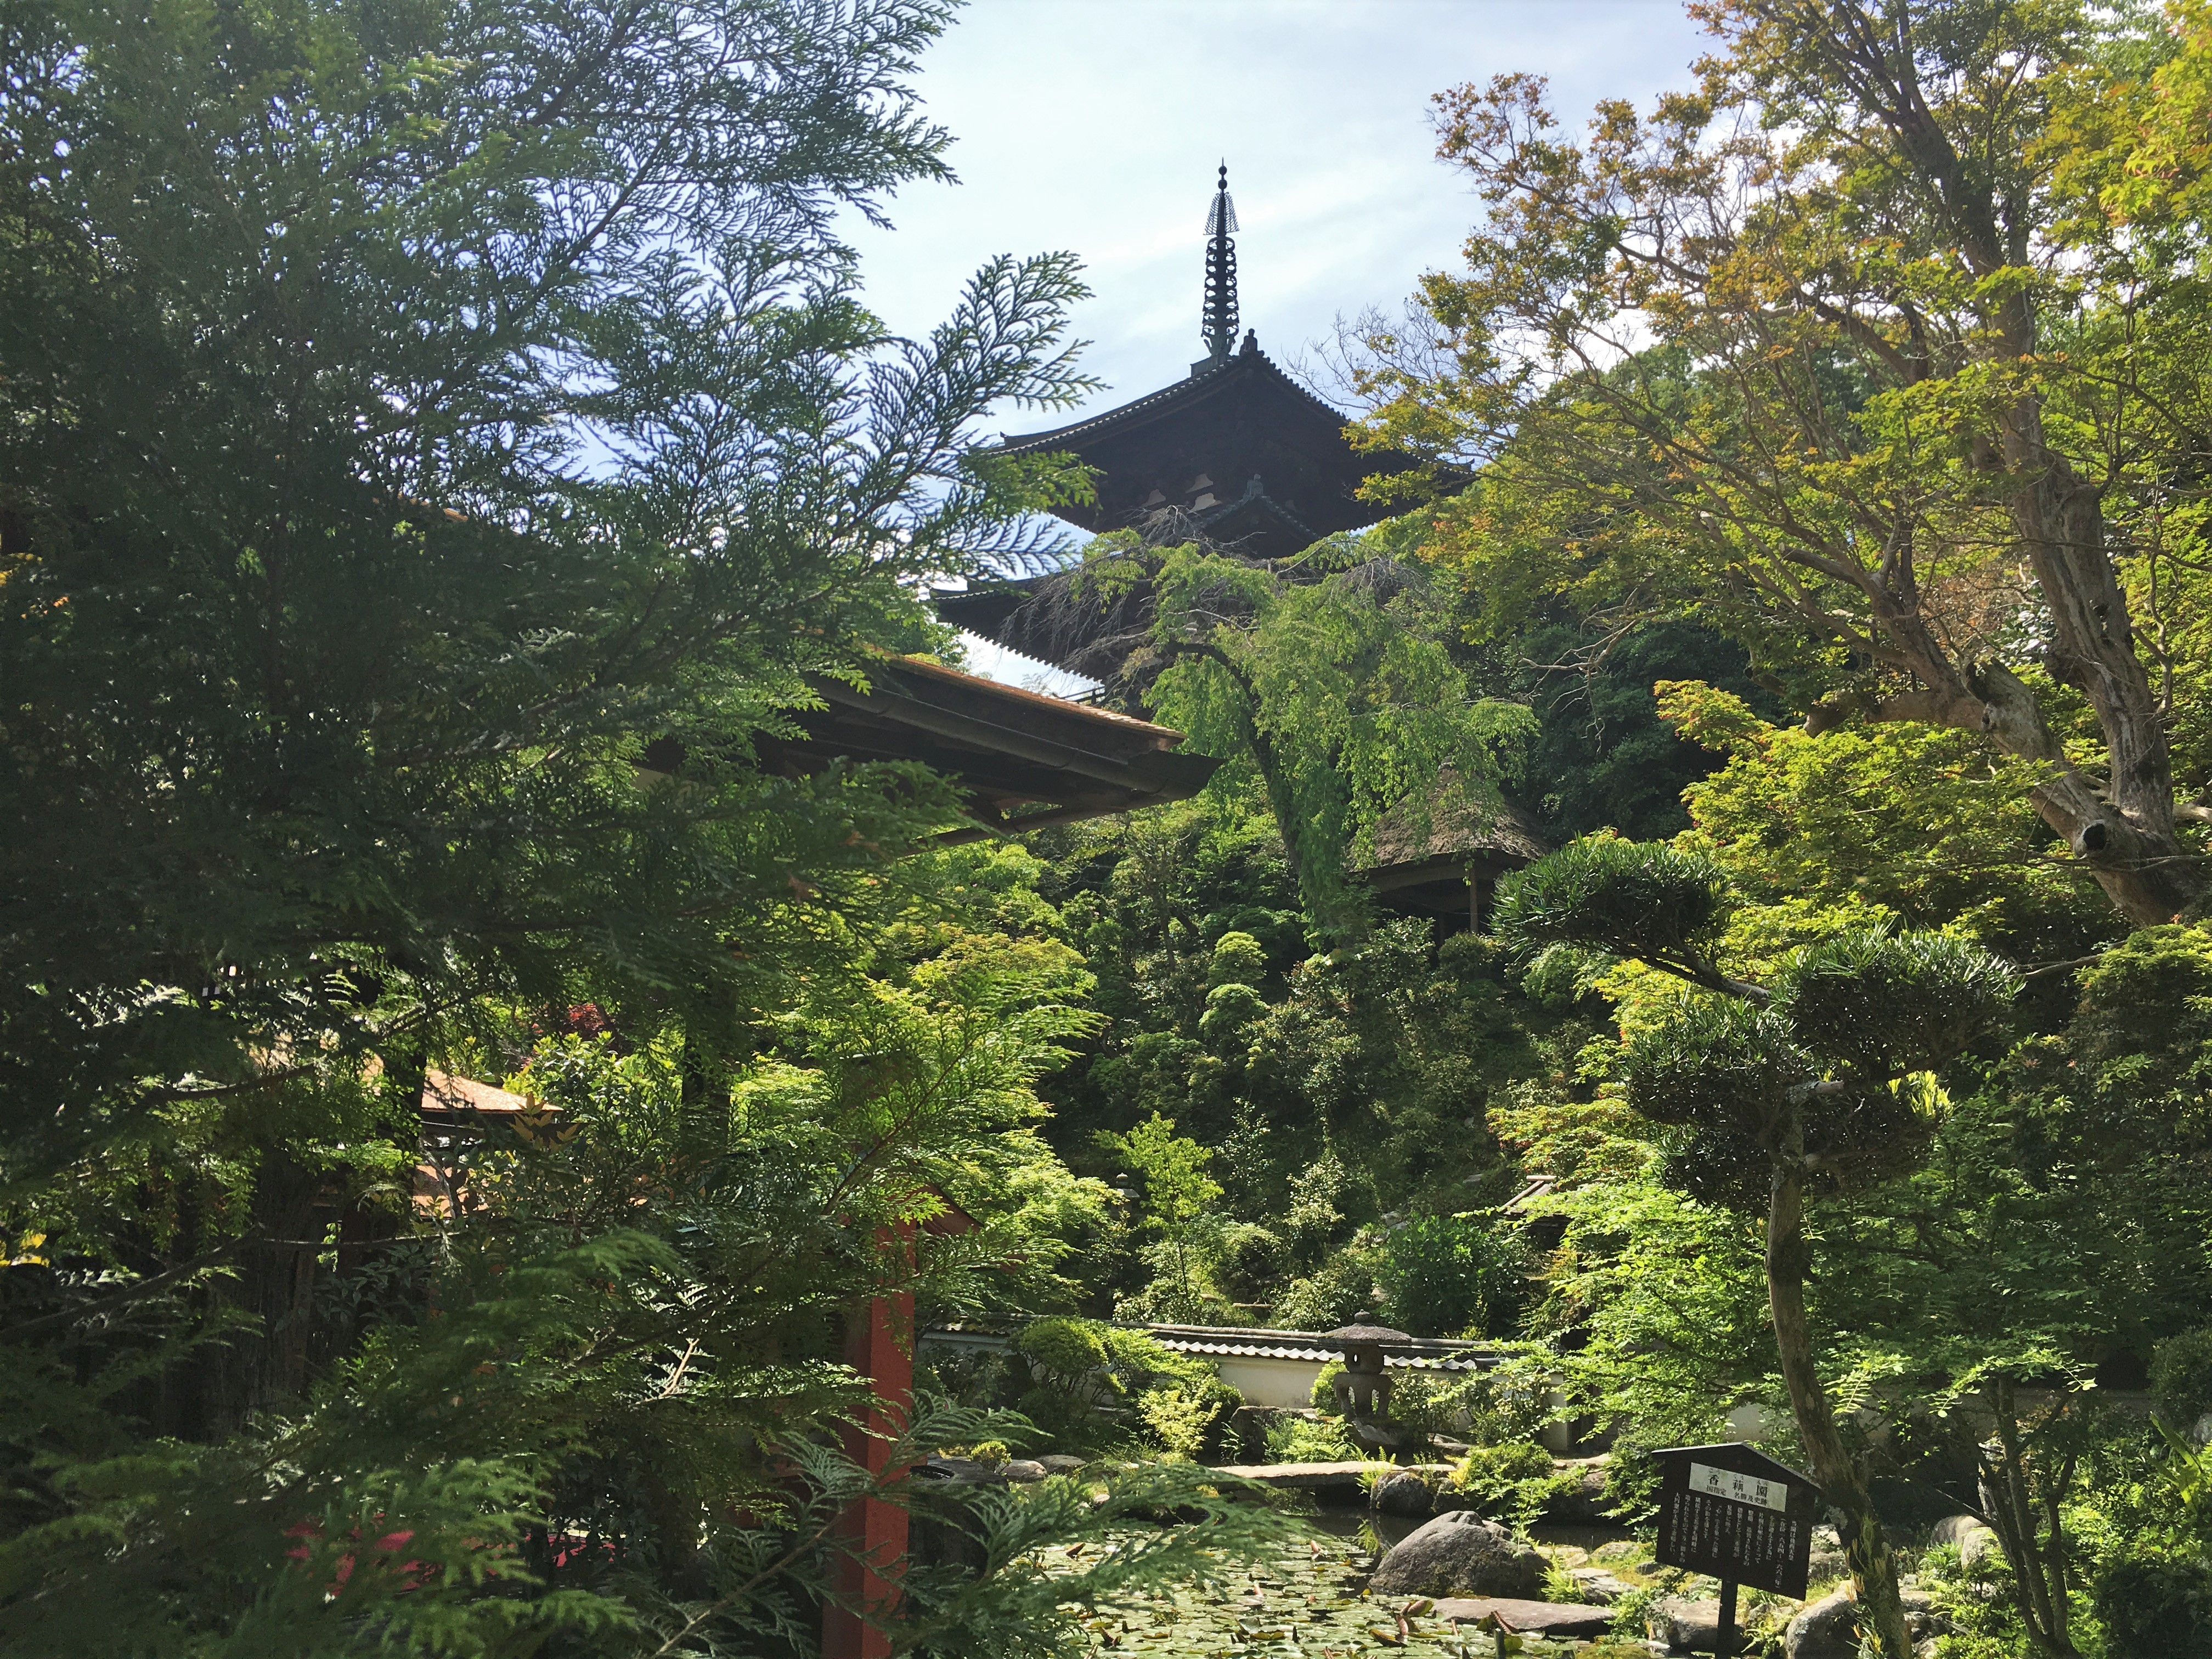 Koguen garden with the east pagoda taima-dera in background